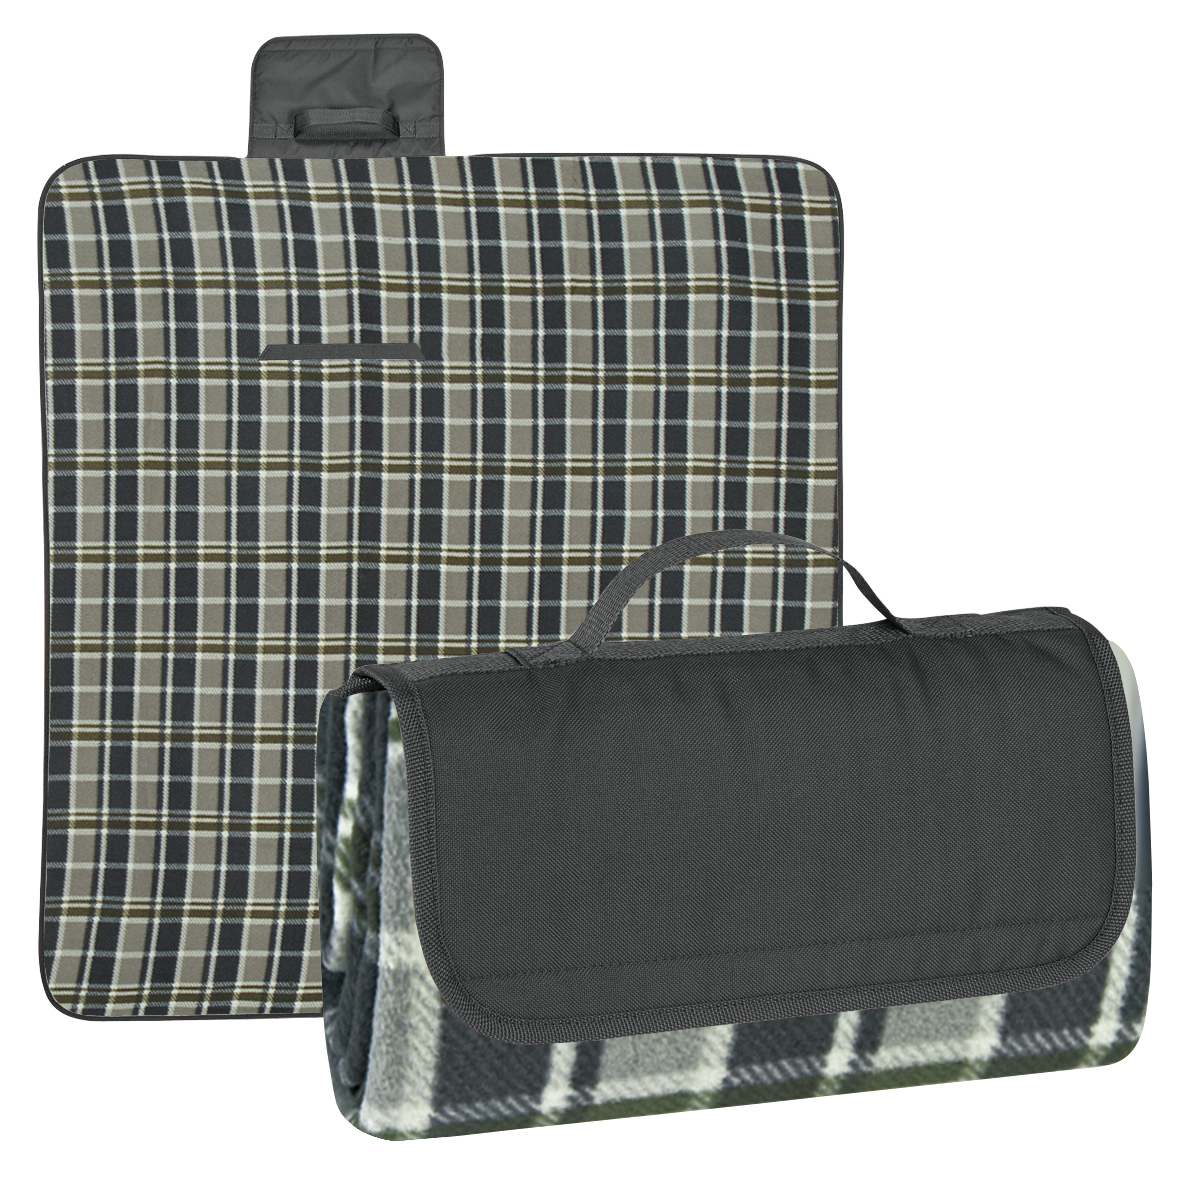 Black Flap with Black and Gray Plaid Blanket Roll-Up Picnic Blanket